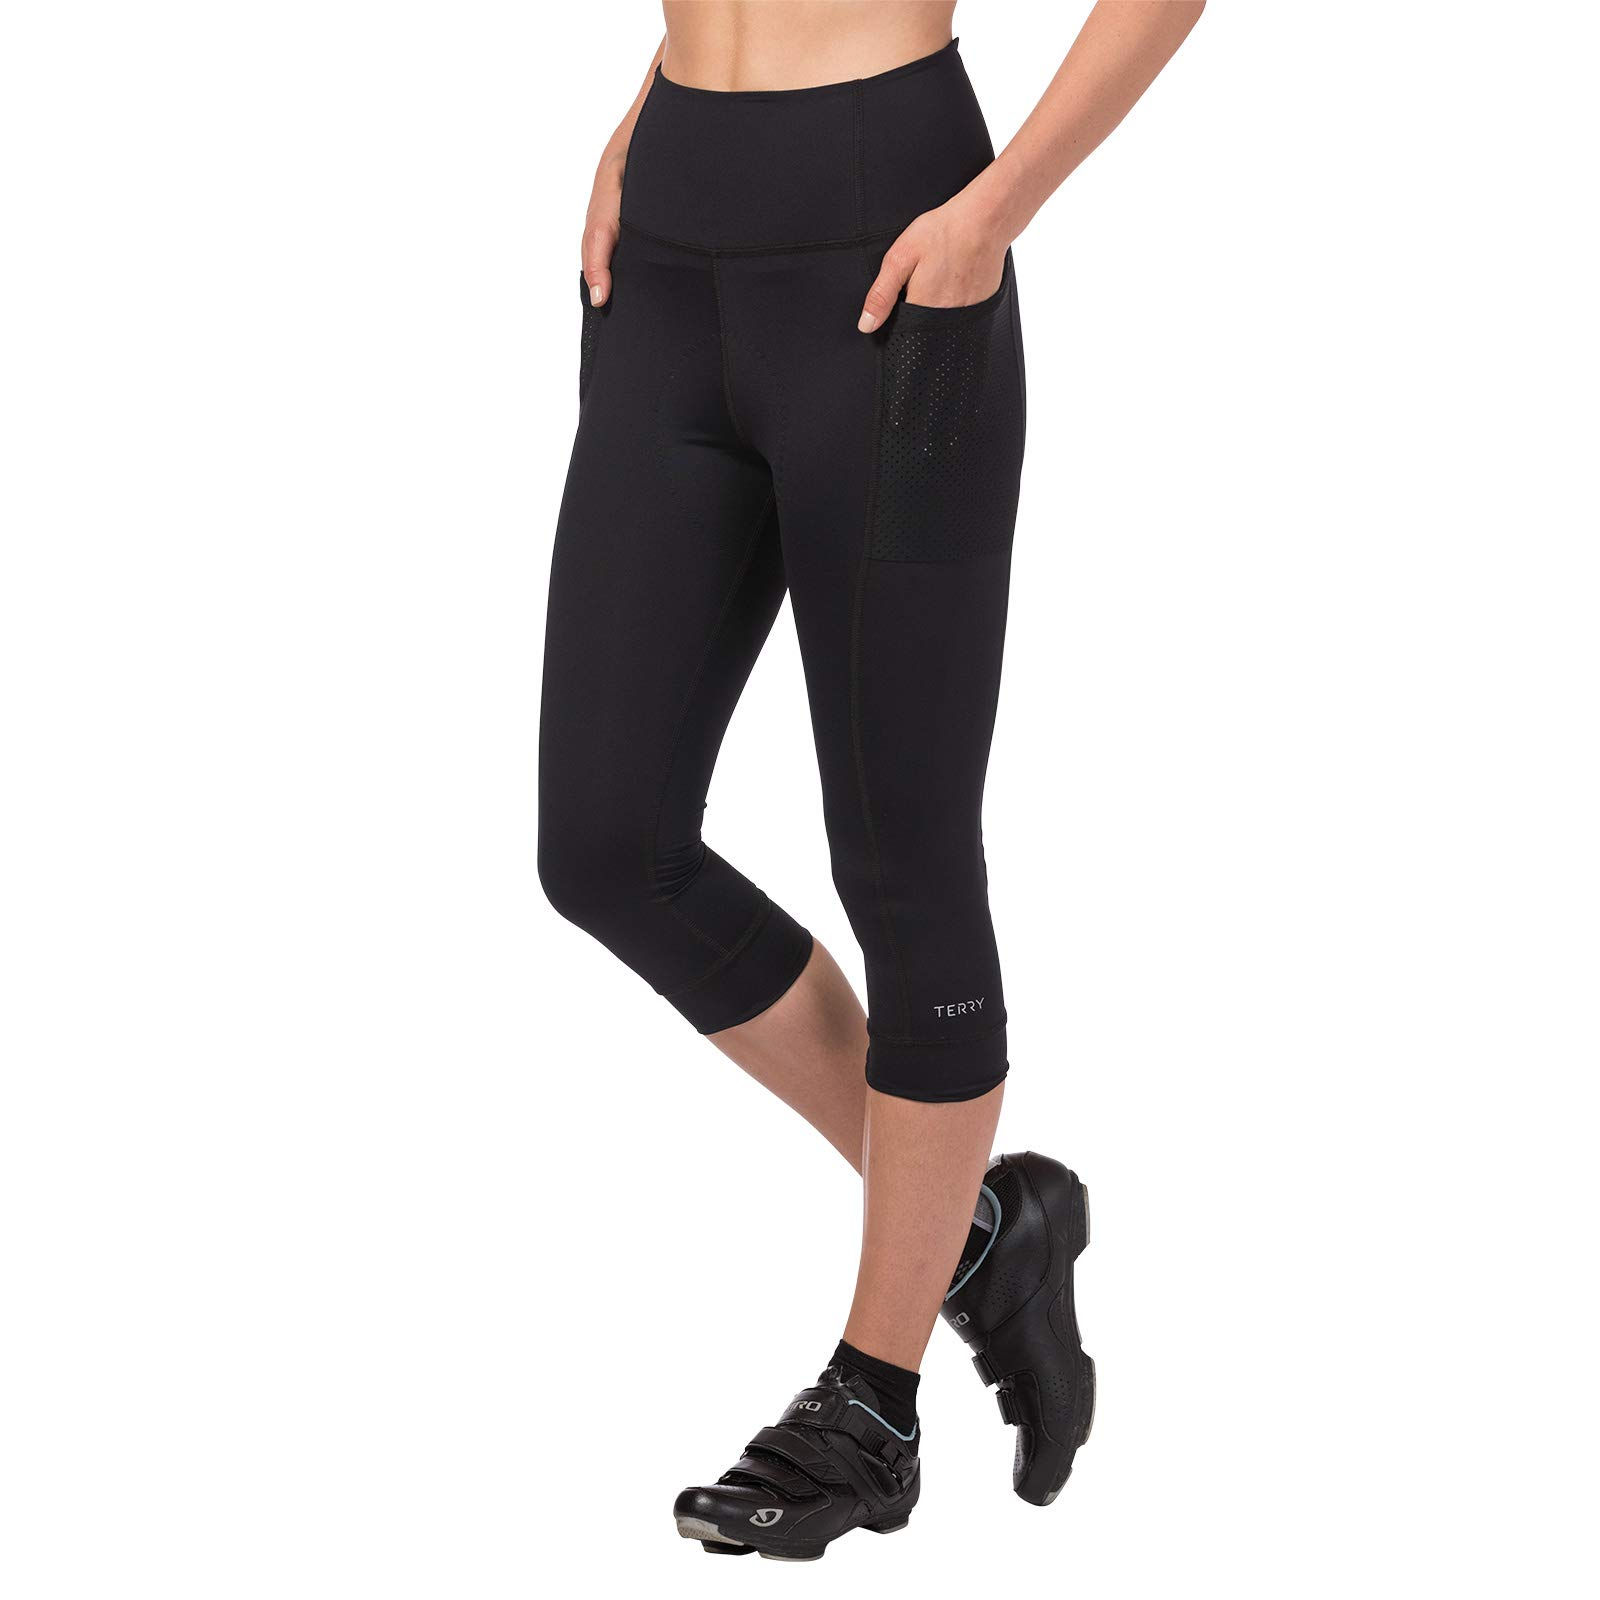 Terry Holster Hi Rise Cycling Capri Pant for Women - Bike Bottoms with Pockets and HI-Rise Waistband Moderate Compression – Black – Small by Terry (Image #1)